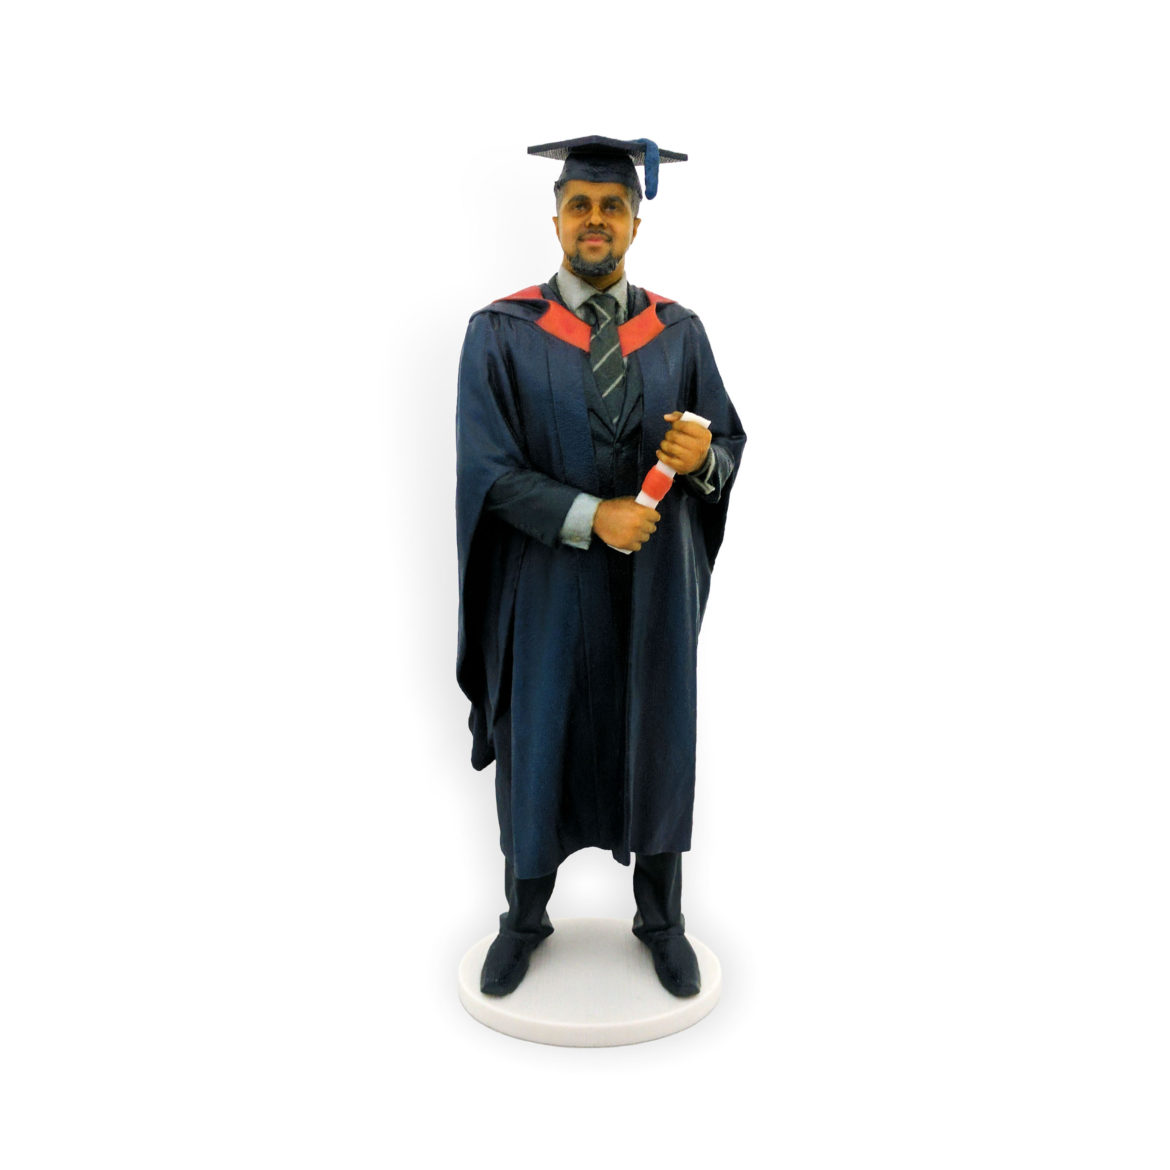 my3Dtwin, 3D Printed Graduation Figurine of a man with tie and scroll in hands